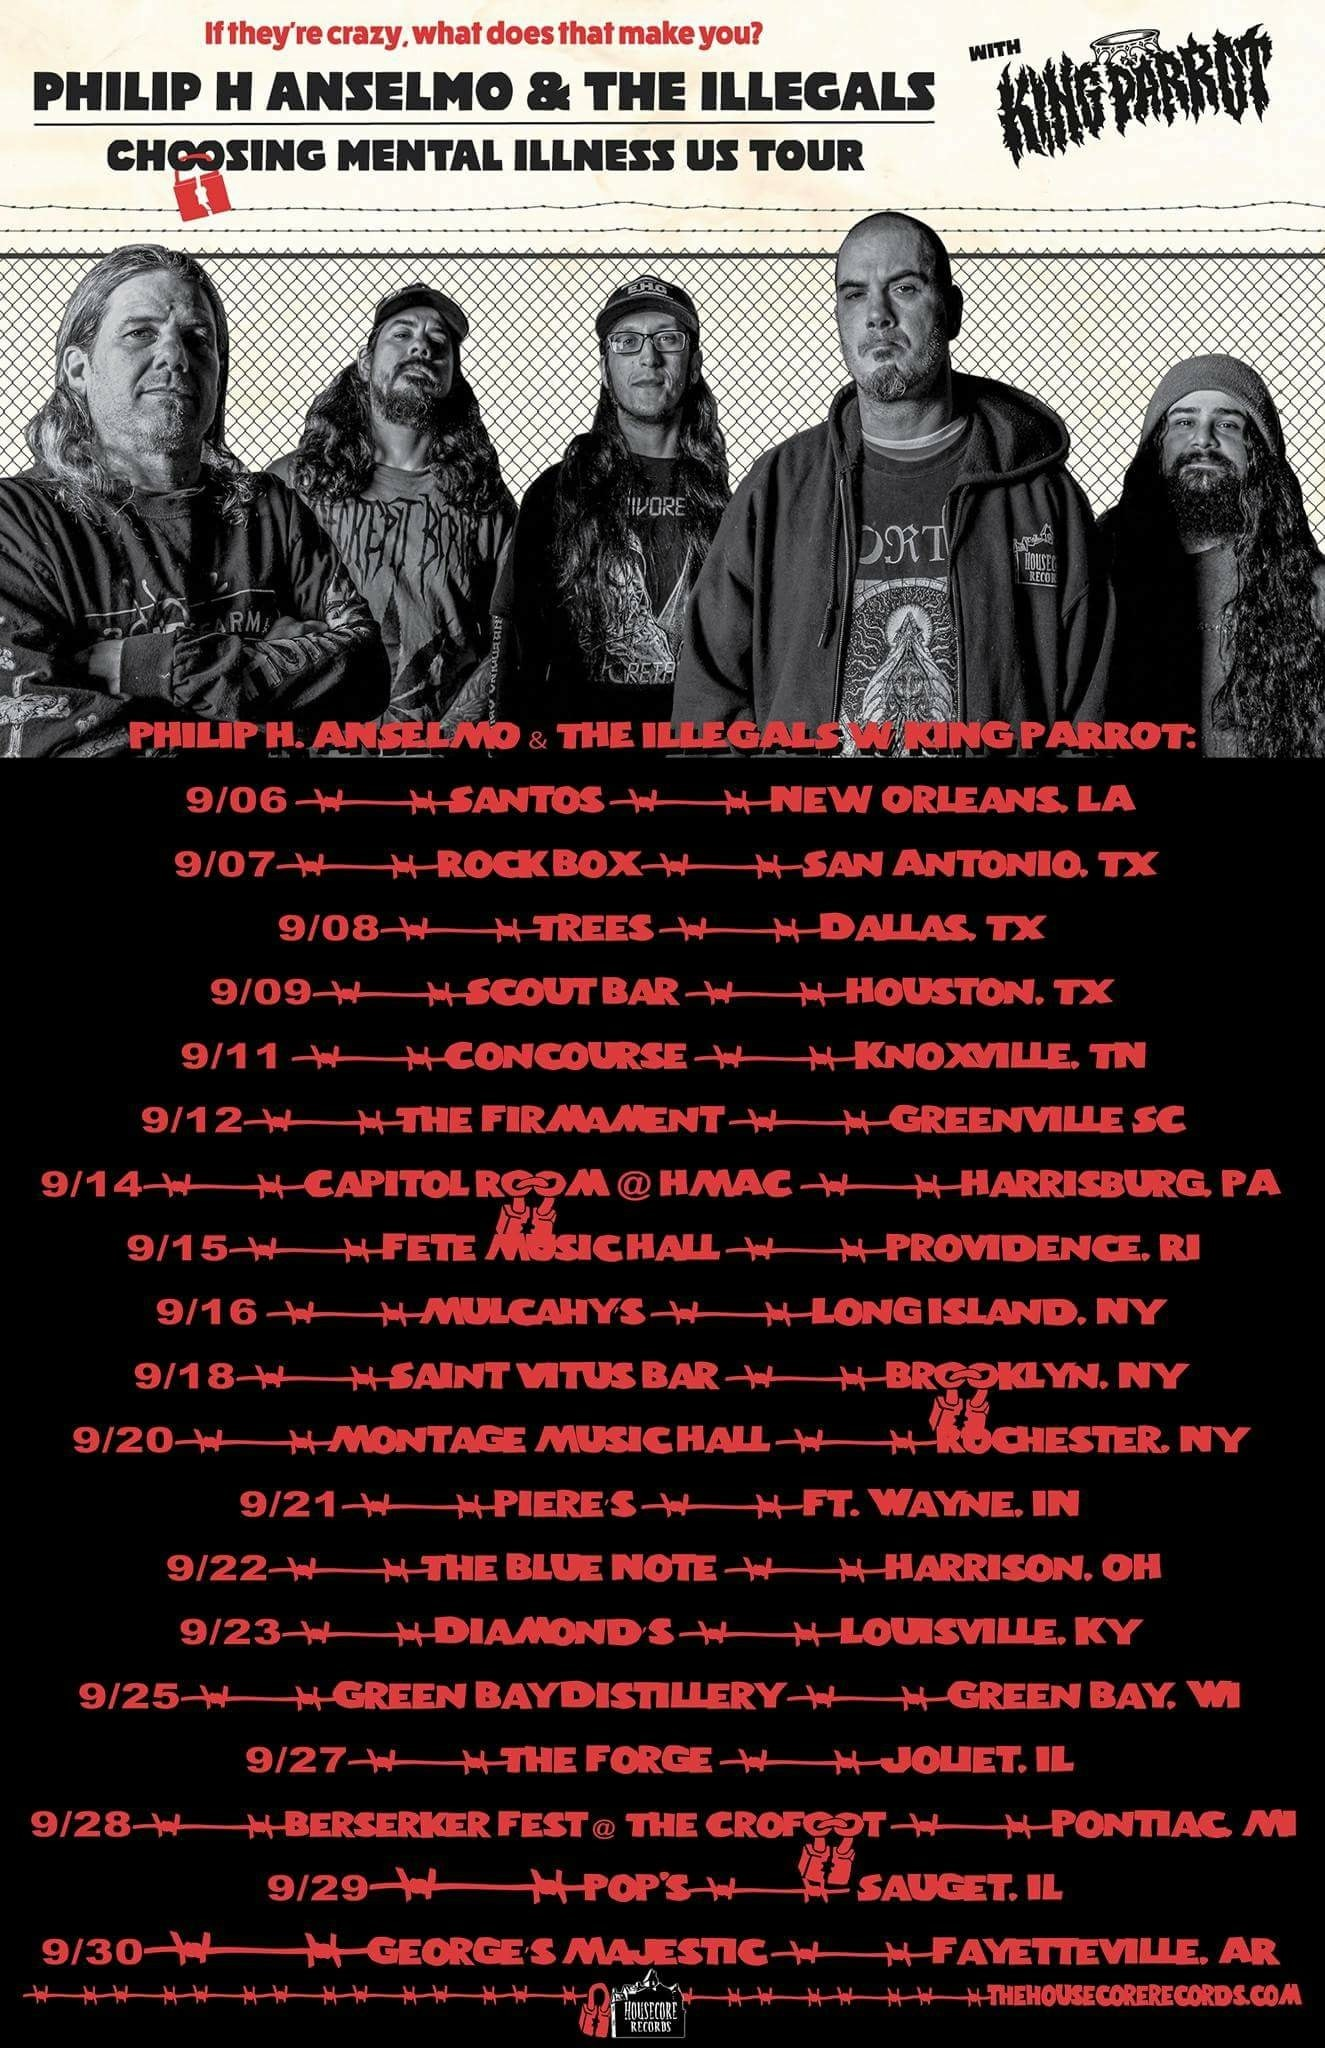 New Orleans with Philip H. Anselmo and The Illegals